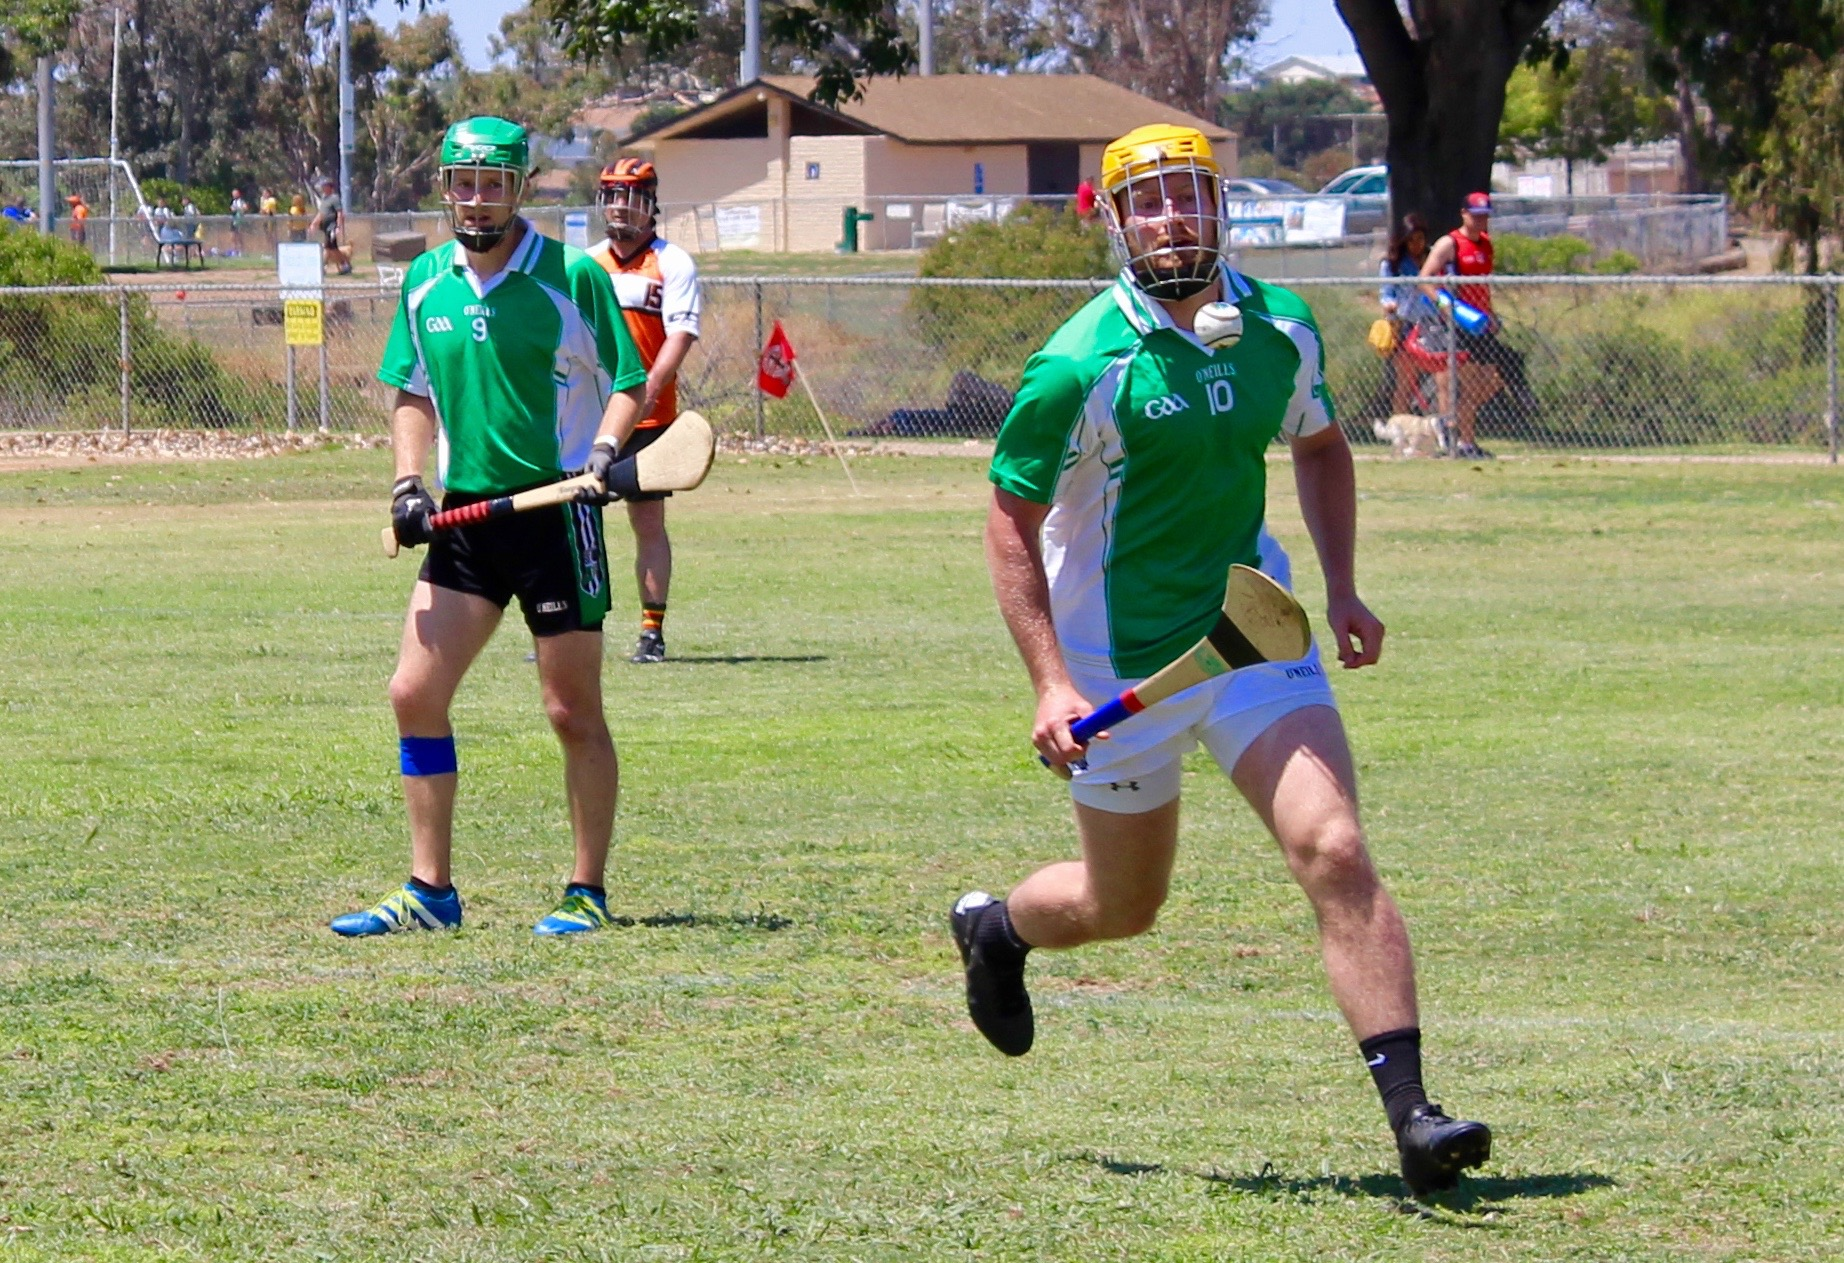 west coast sevens hurling oc wild geese vs regulators 9